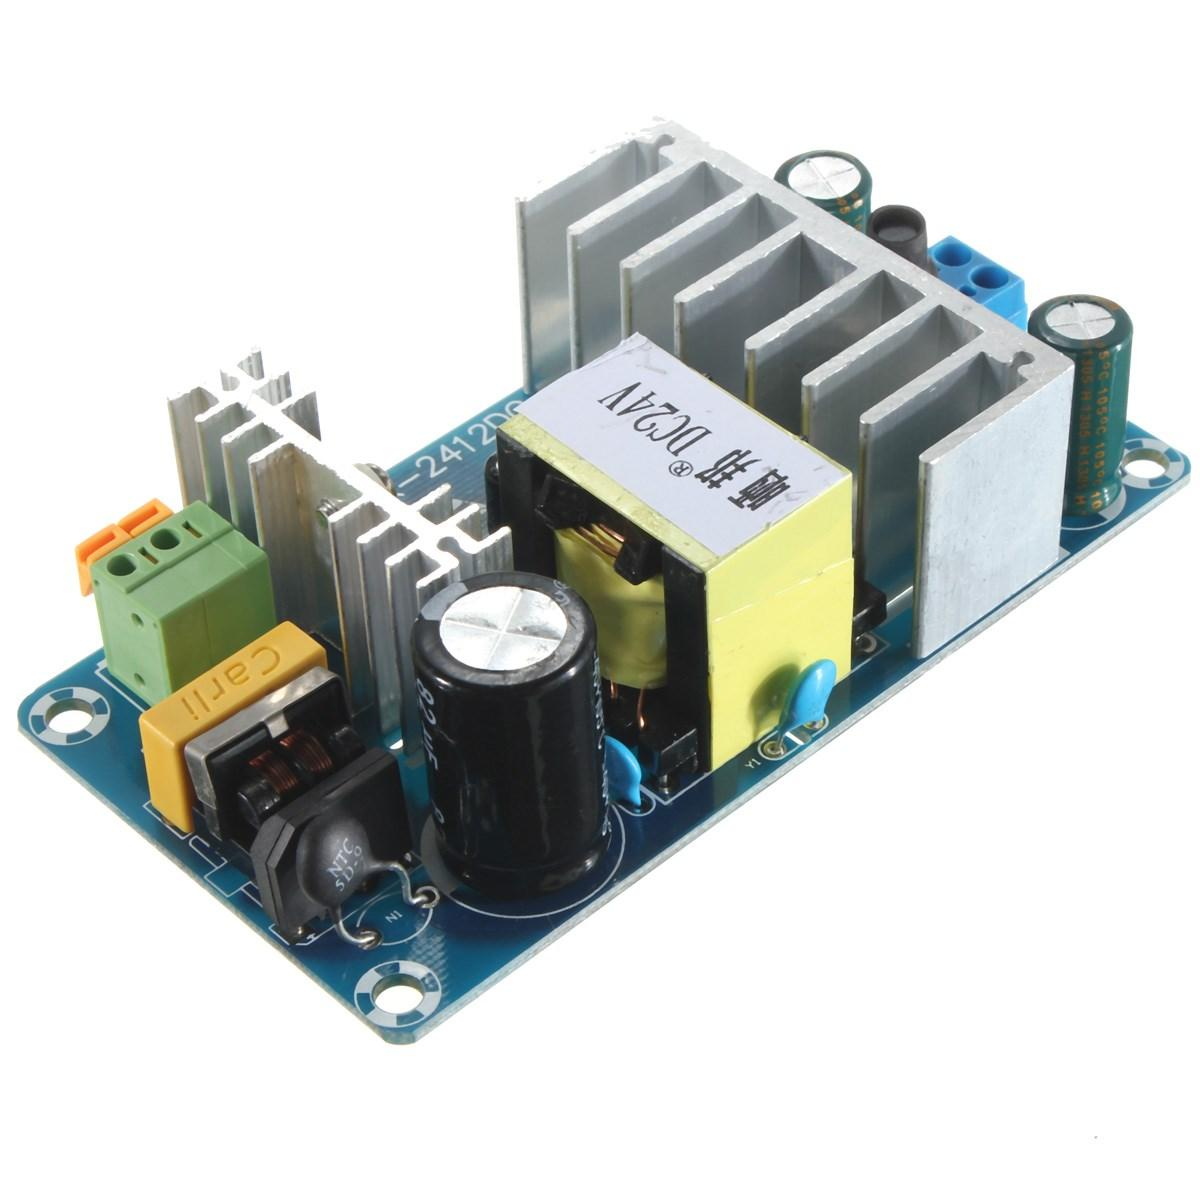 2019 Dc2412 4a To 6a 24v Stable High Power Switching Supply Smps Board Tablet Circuit Ac Dc Module Transformer Wholesale From Guiy 3024